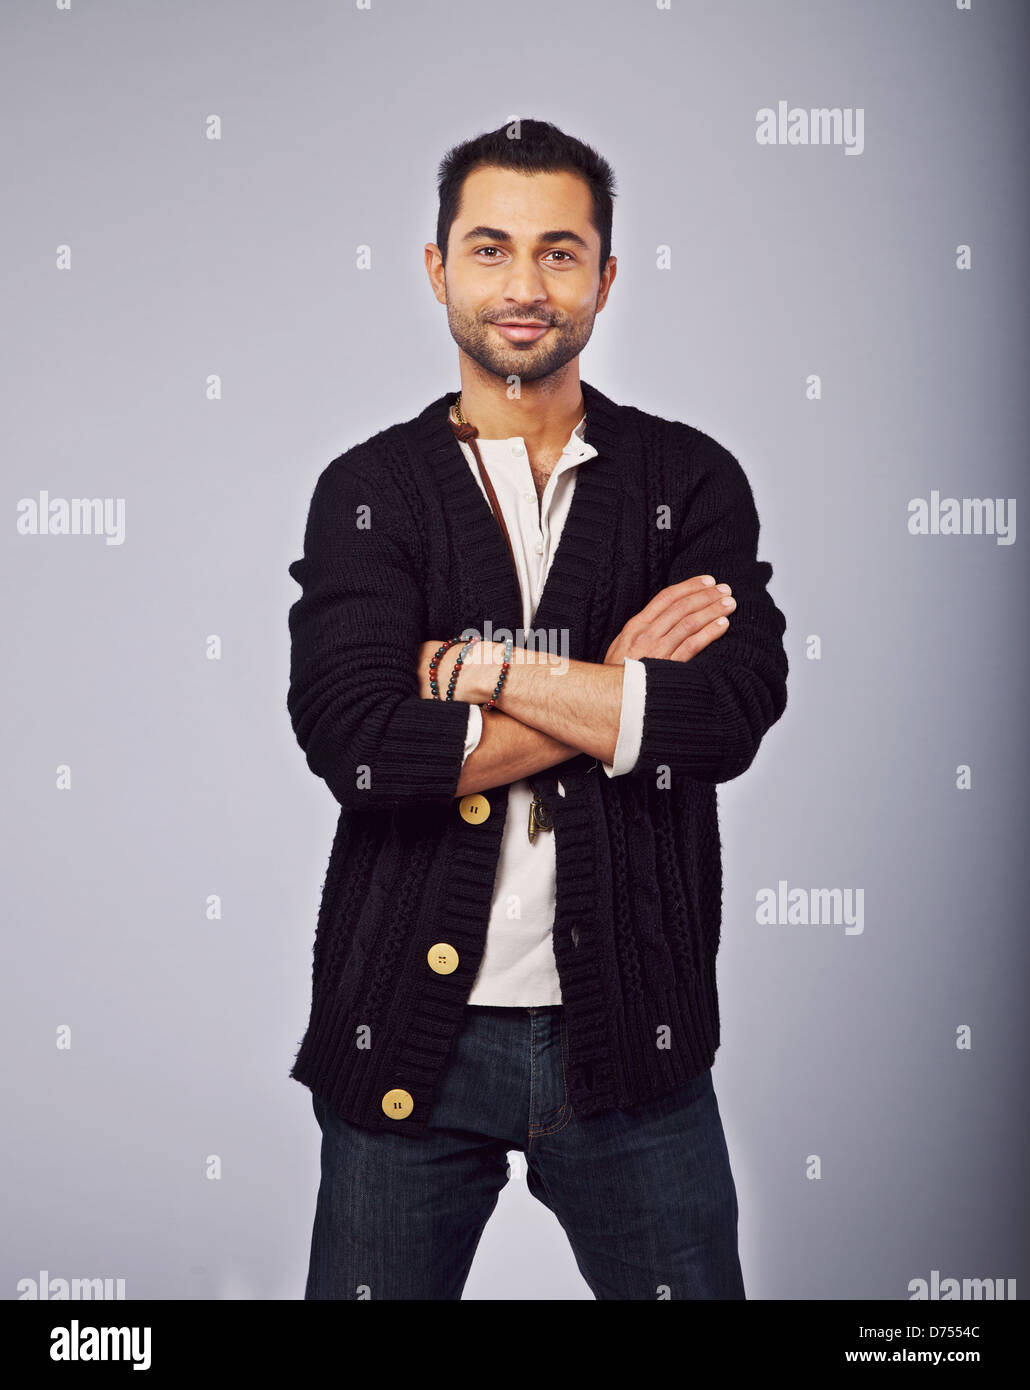 Portrait of a smiling fashionable guy standing in a studio - Stock Image